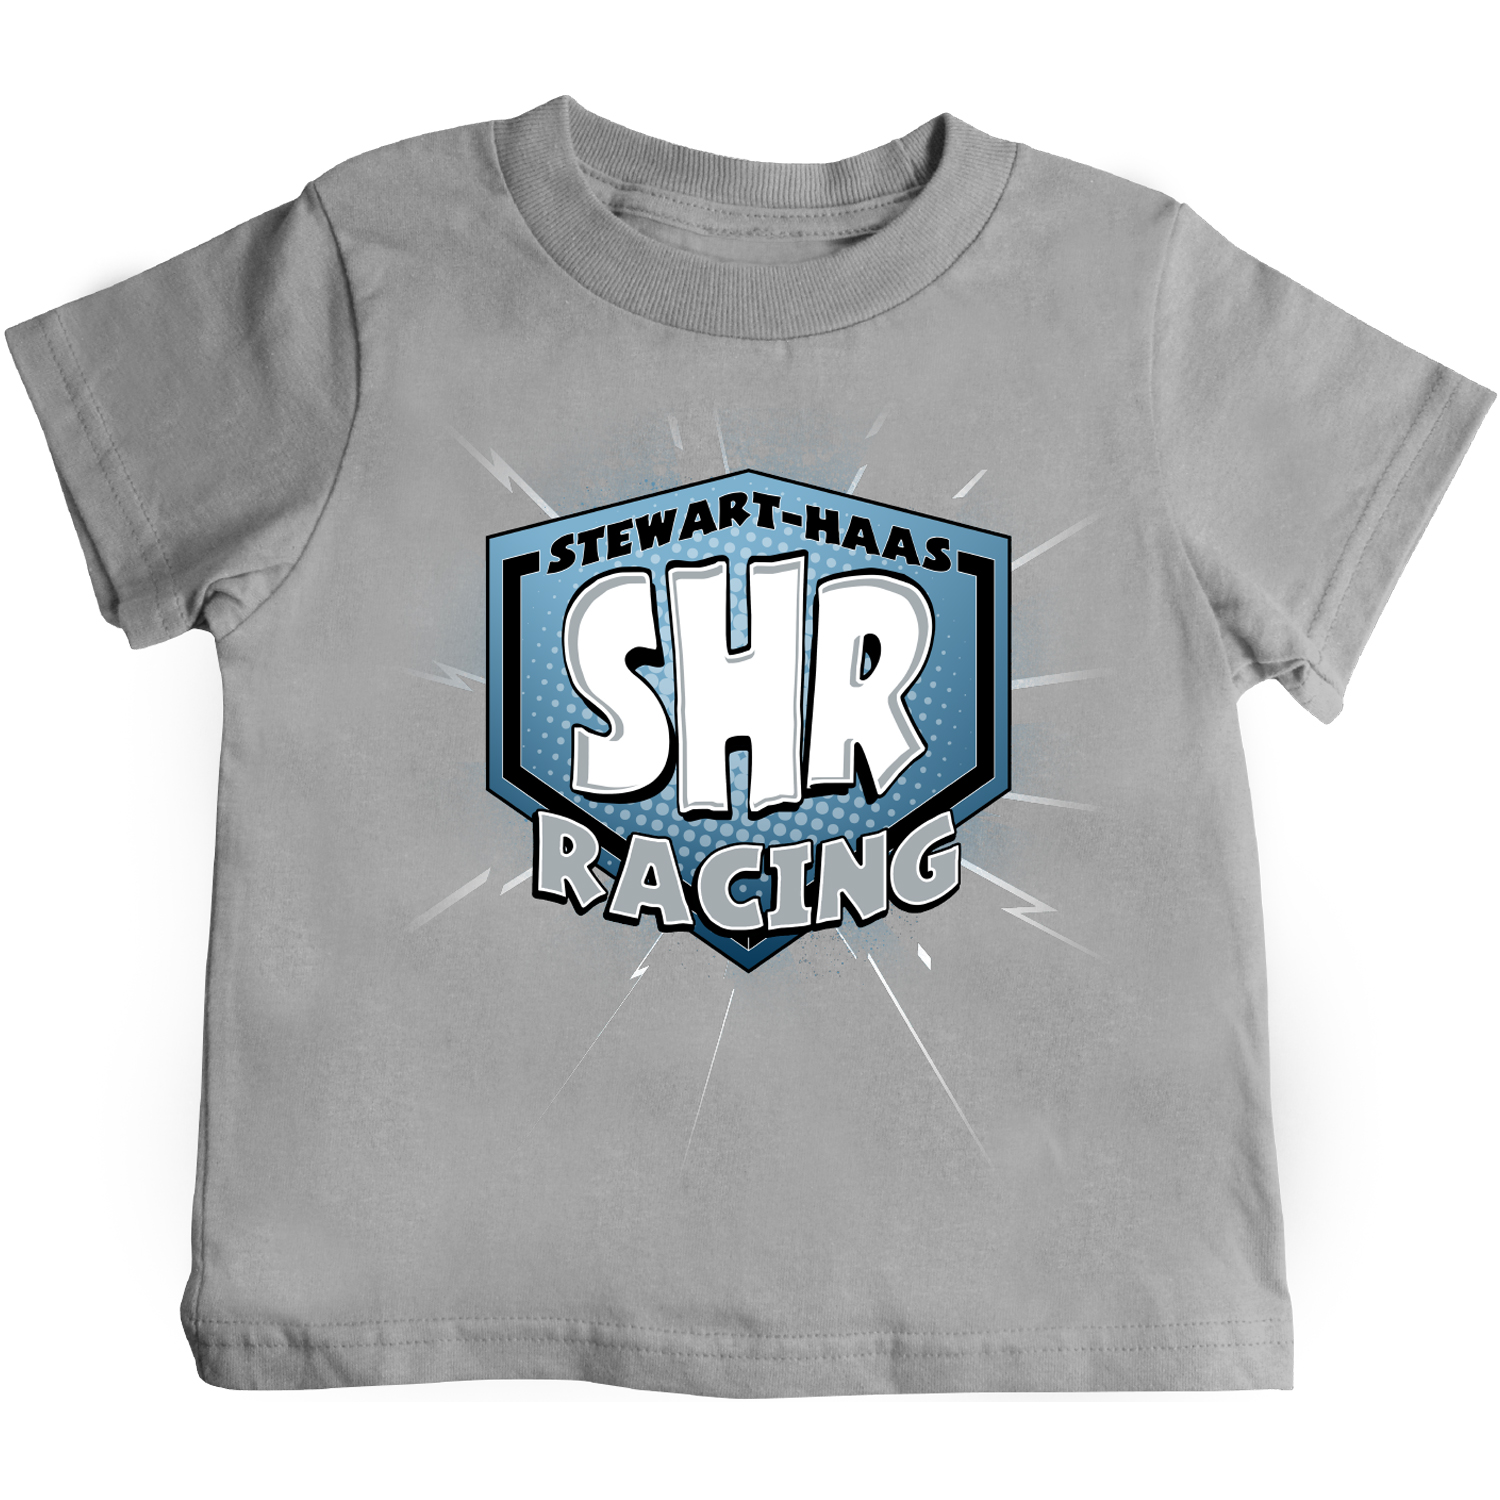 Exclusive Stewart-Haas Racing Toddler Tee Shirt